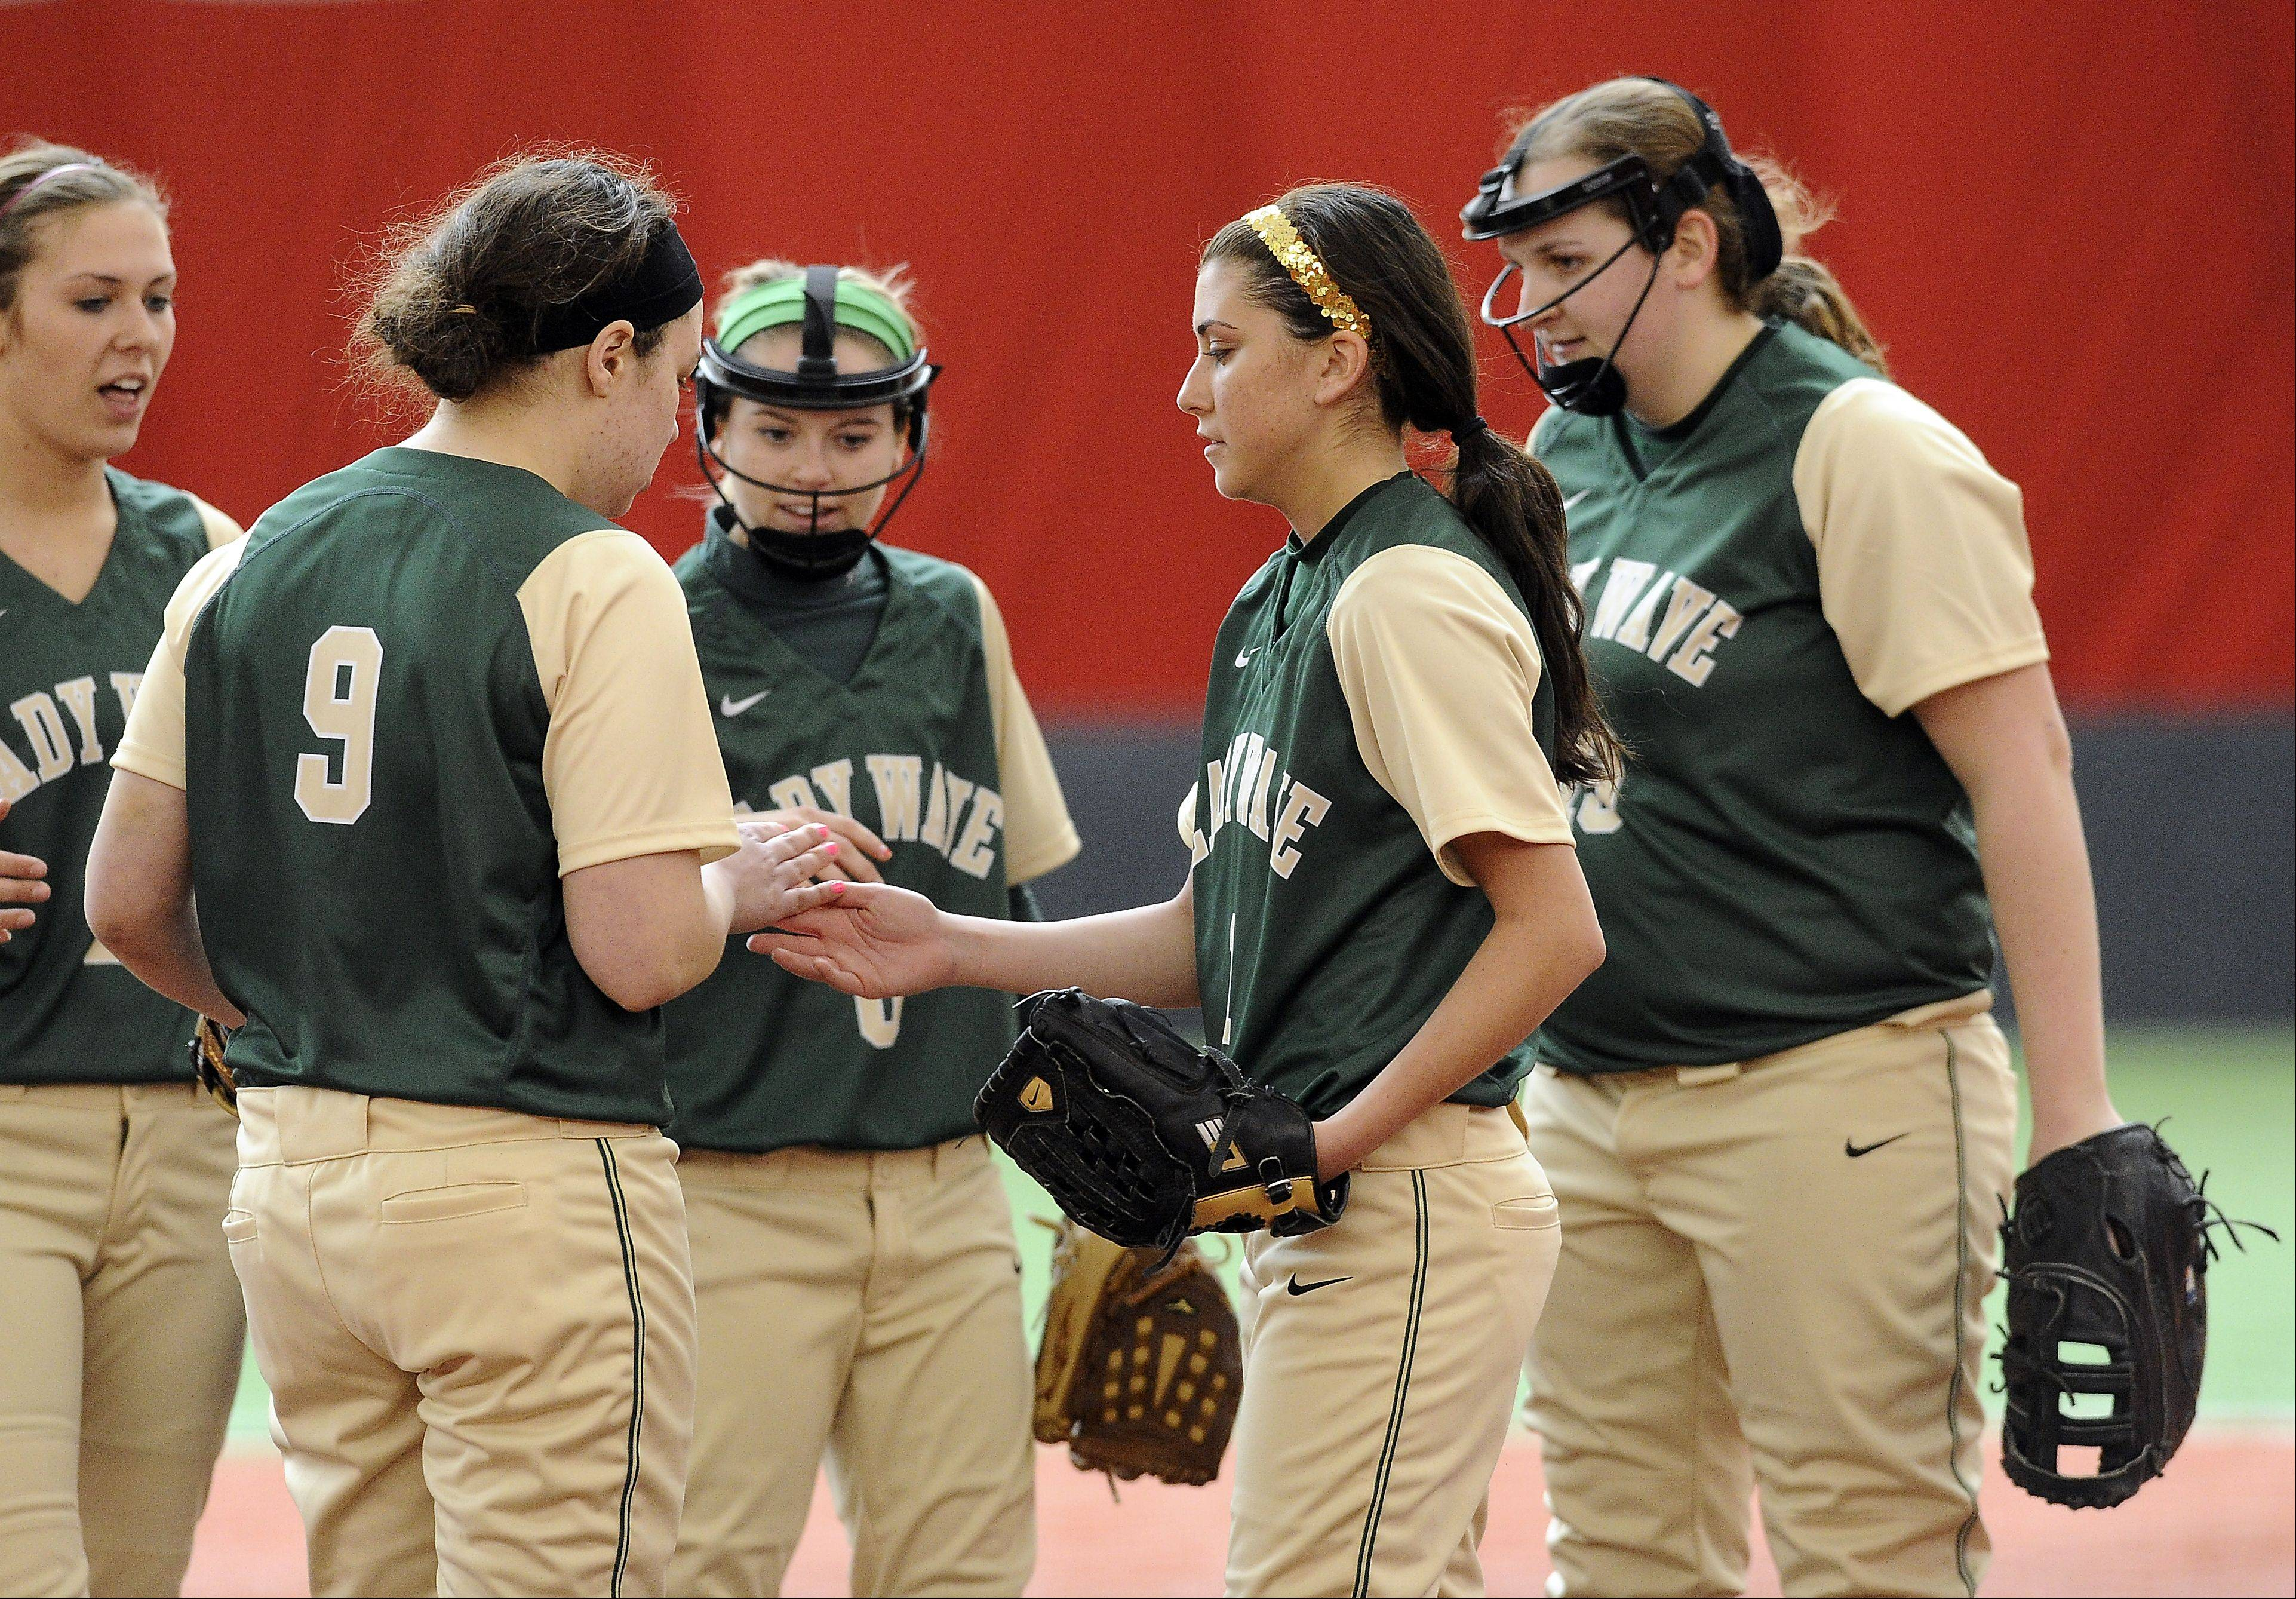 The St. Edward softball team gathers to talk things over during a game against Freeport in The Dome at The Ballpark in Rosemont earlier this season. The Green Wave host the 12th annual Chicagoland Challenge at the Elgin Sports Complex on Saturday.